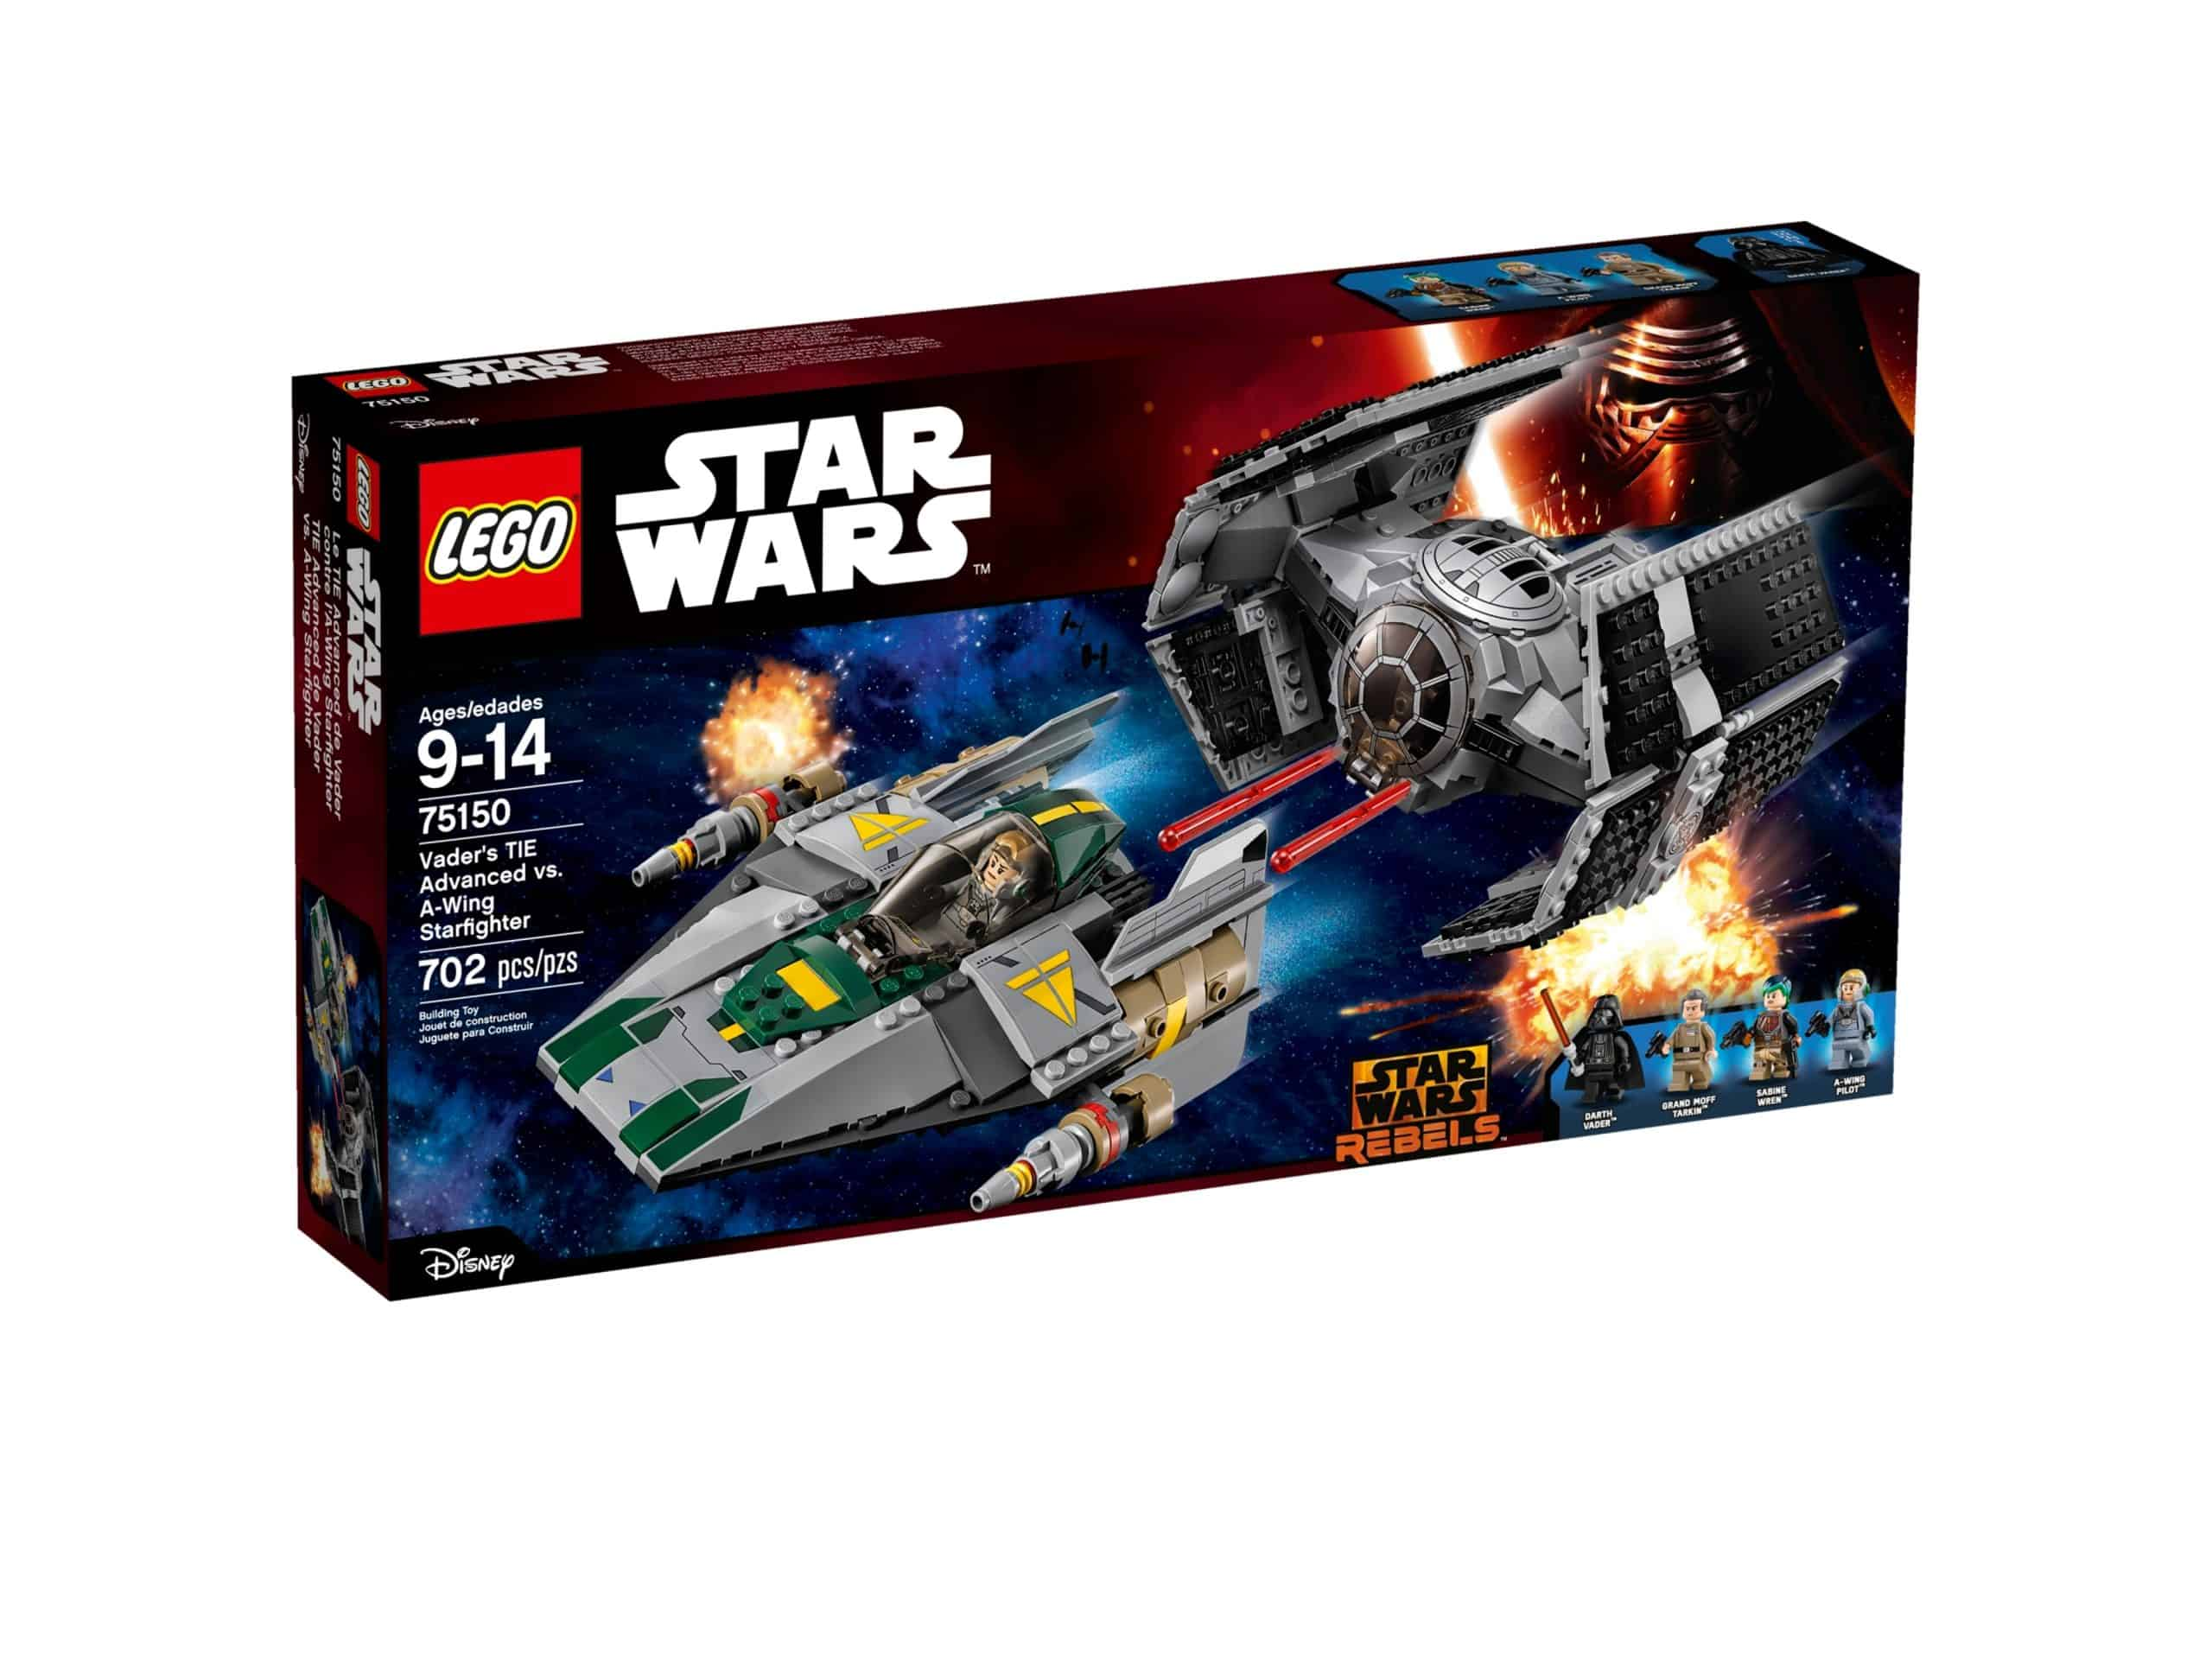 lego 75150 vaders tie advanced mod a wing starfighter scaled